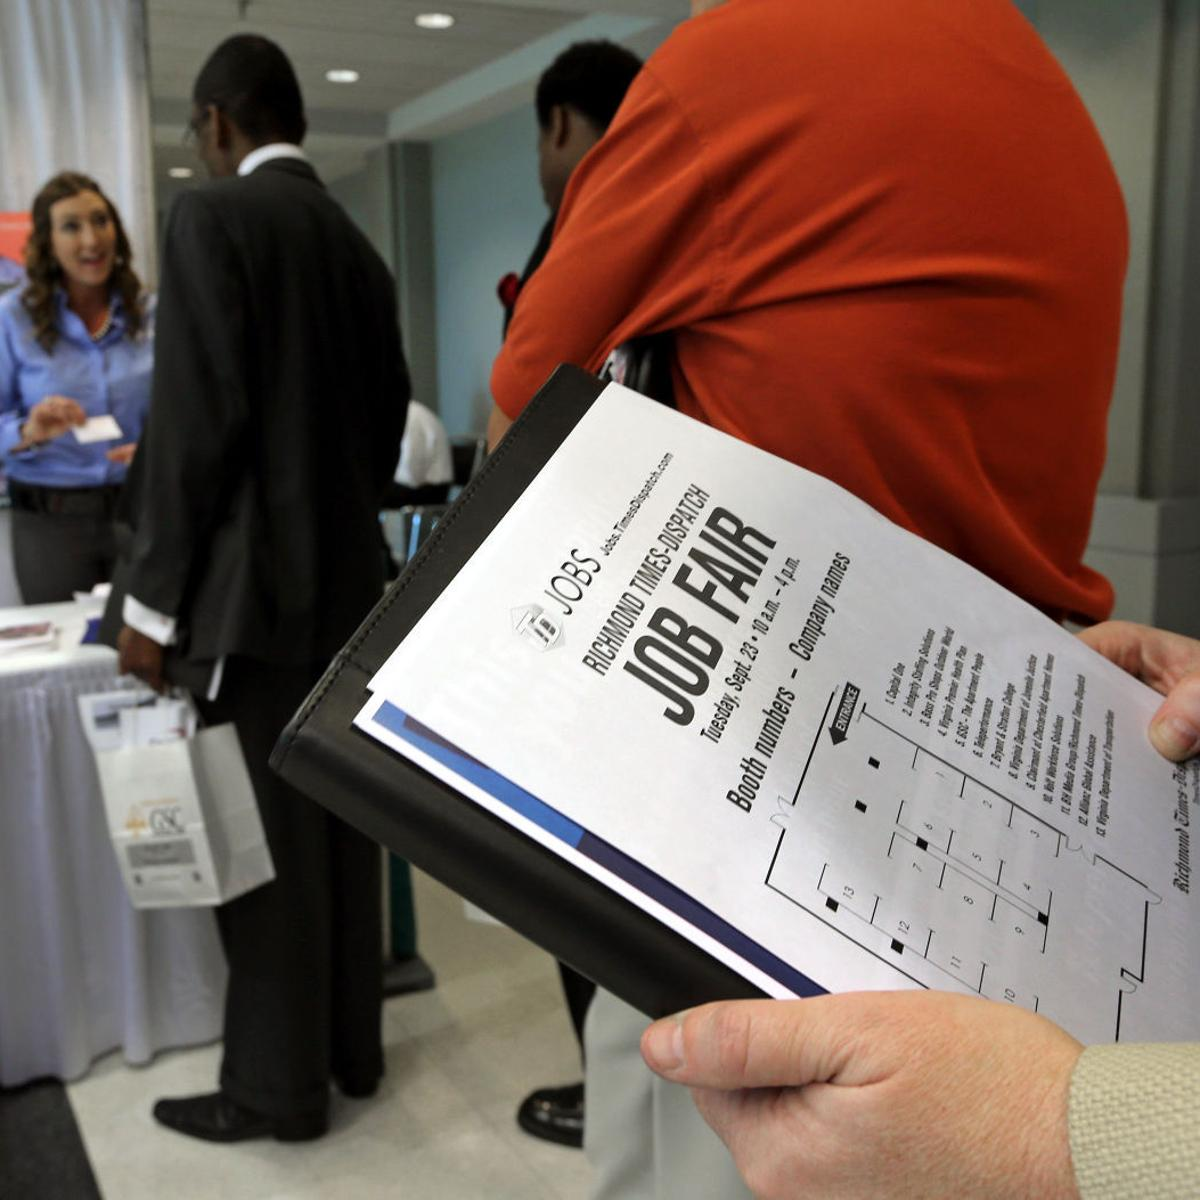 Richmond-area jobless rate rises in May from April, but